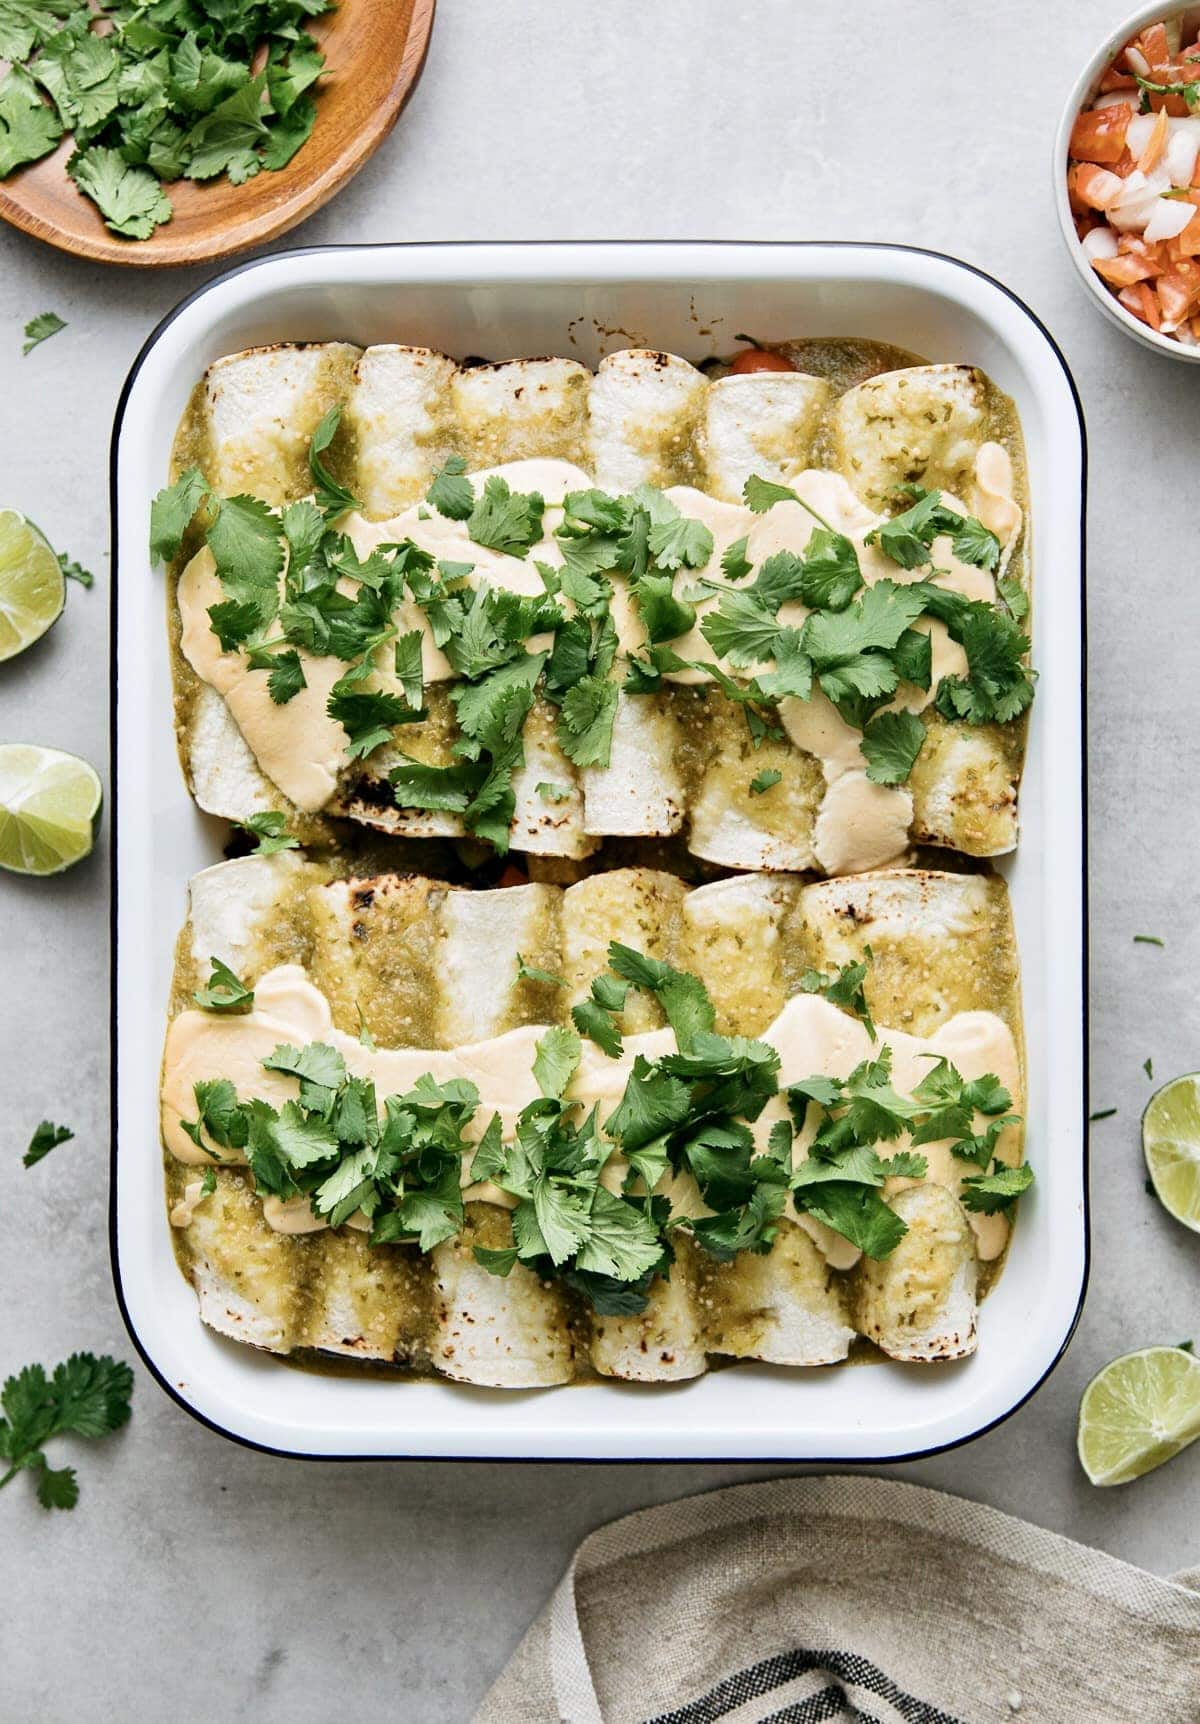 top down view of baking dish with homemade vegan enchiladas verde with items surrounding.